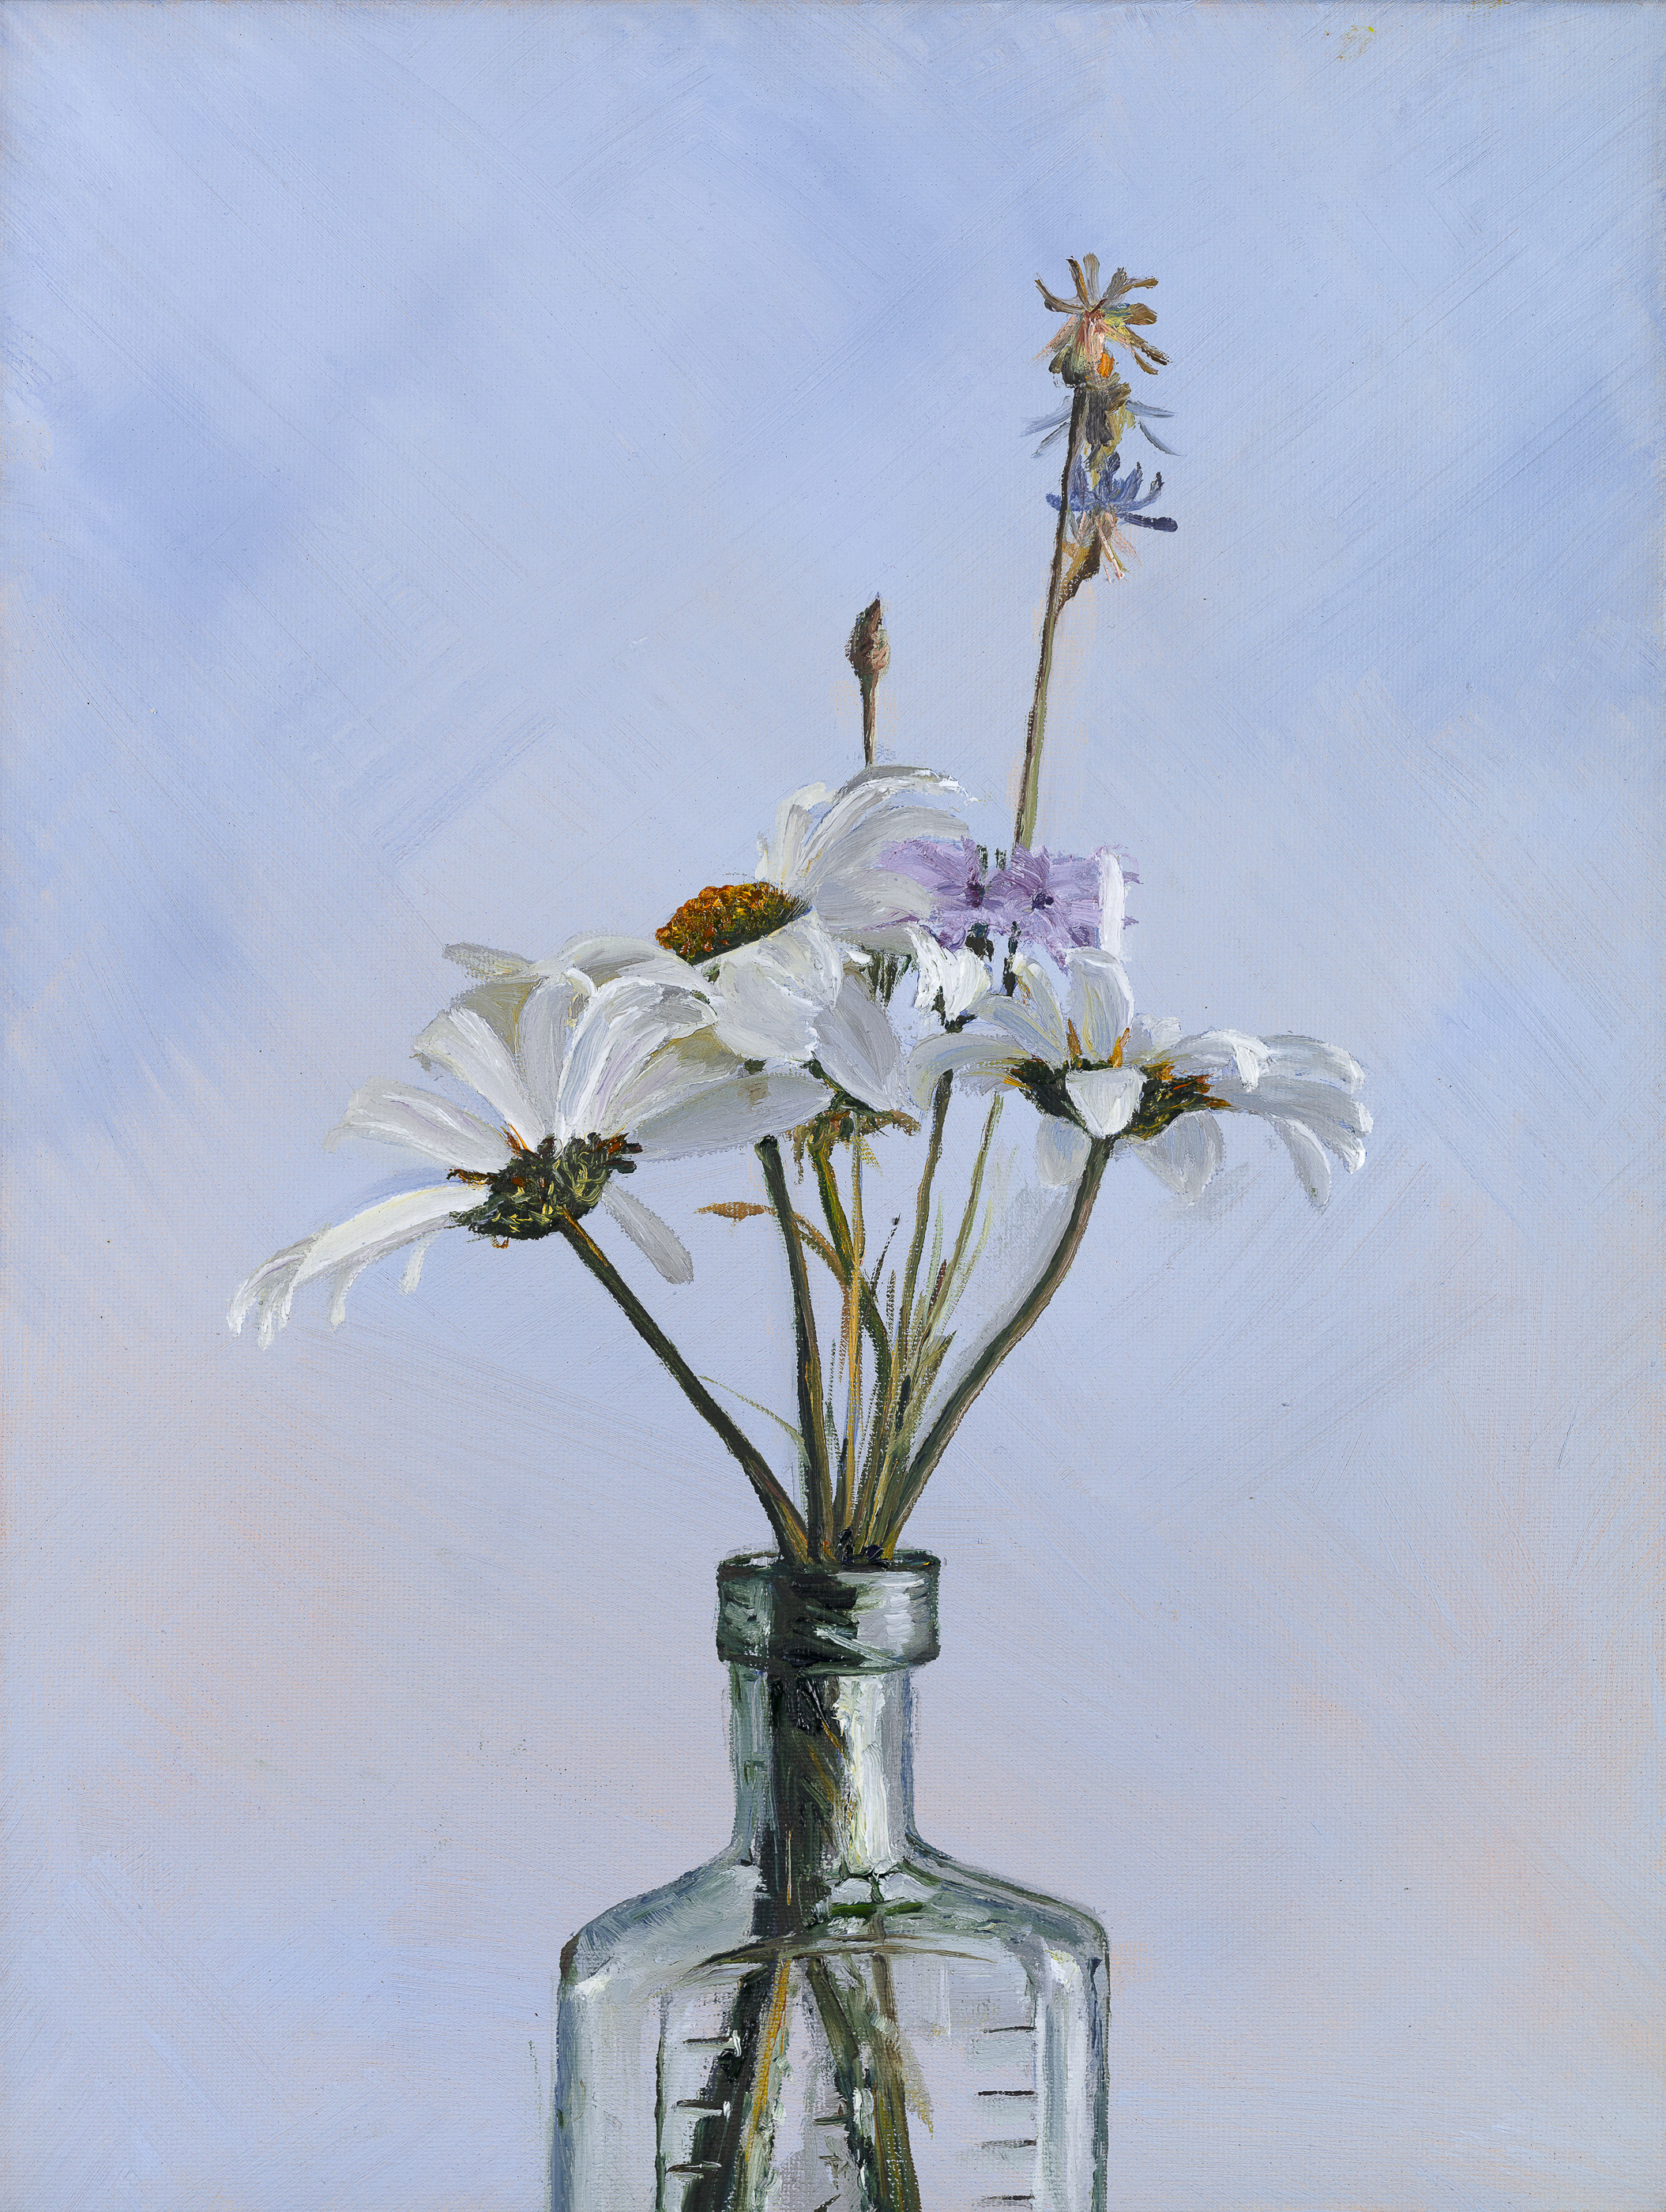 Heidi Mullender_Daisies and linen_2018_oil on canvas - 10 by 14in.jpg